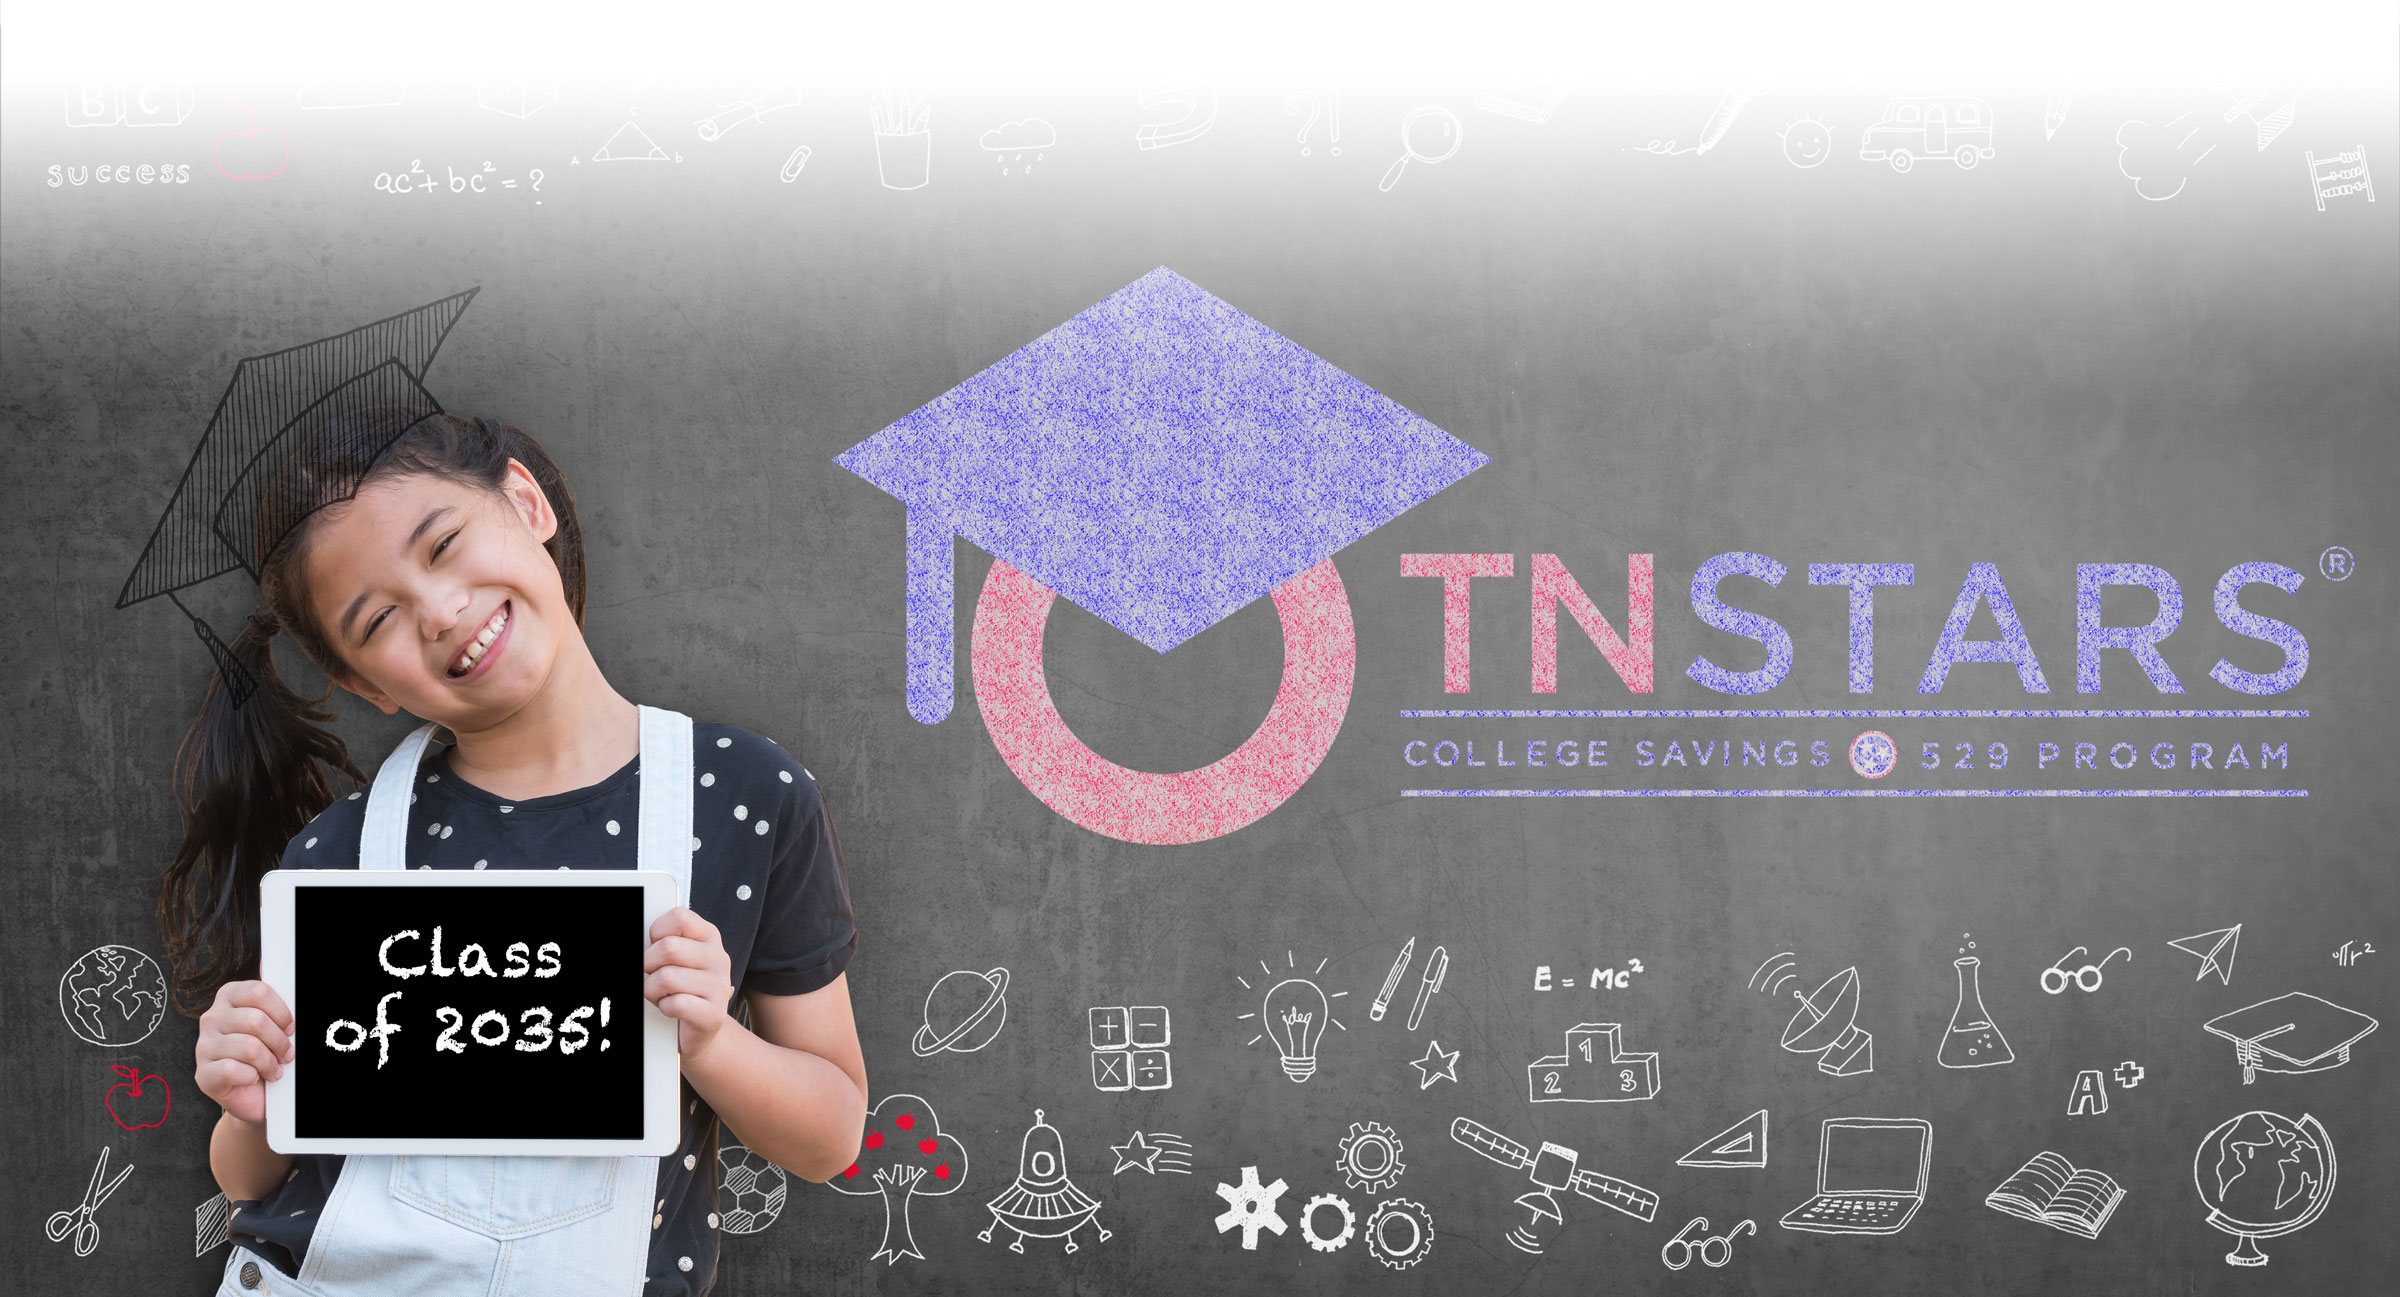 Young female child with graduation cap and class of 2035 on an ipad, TNStars logo written in chalk on chalkboard